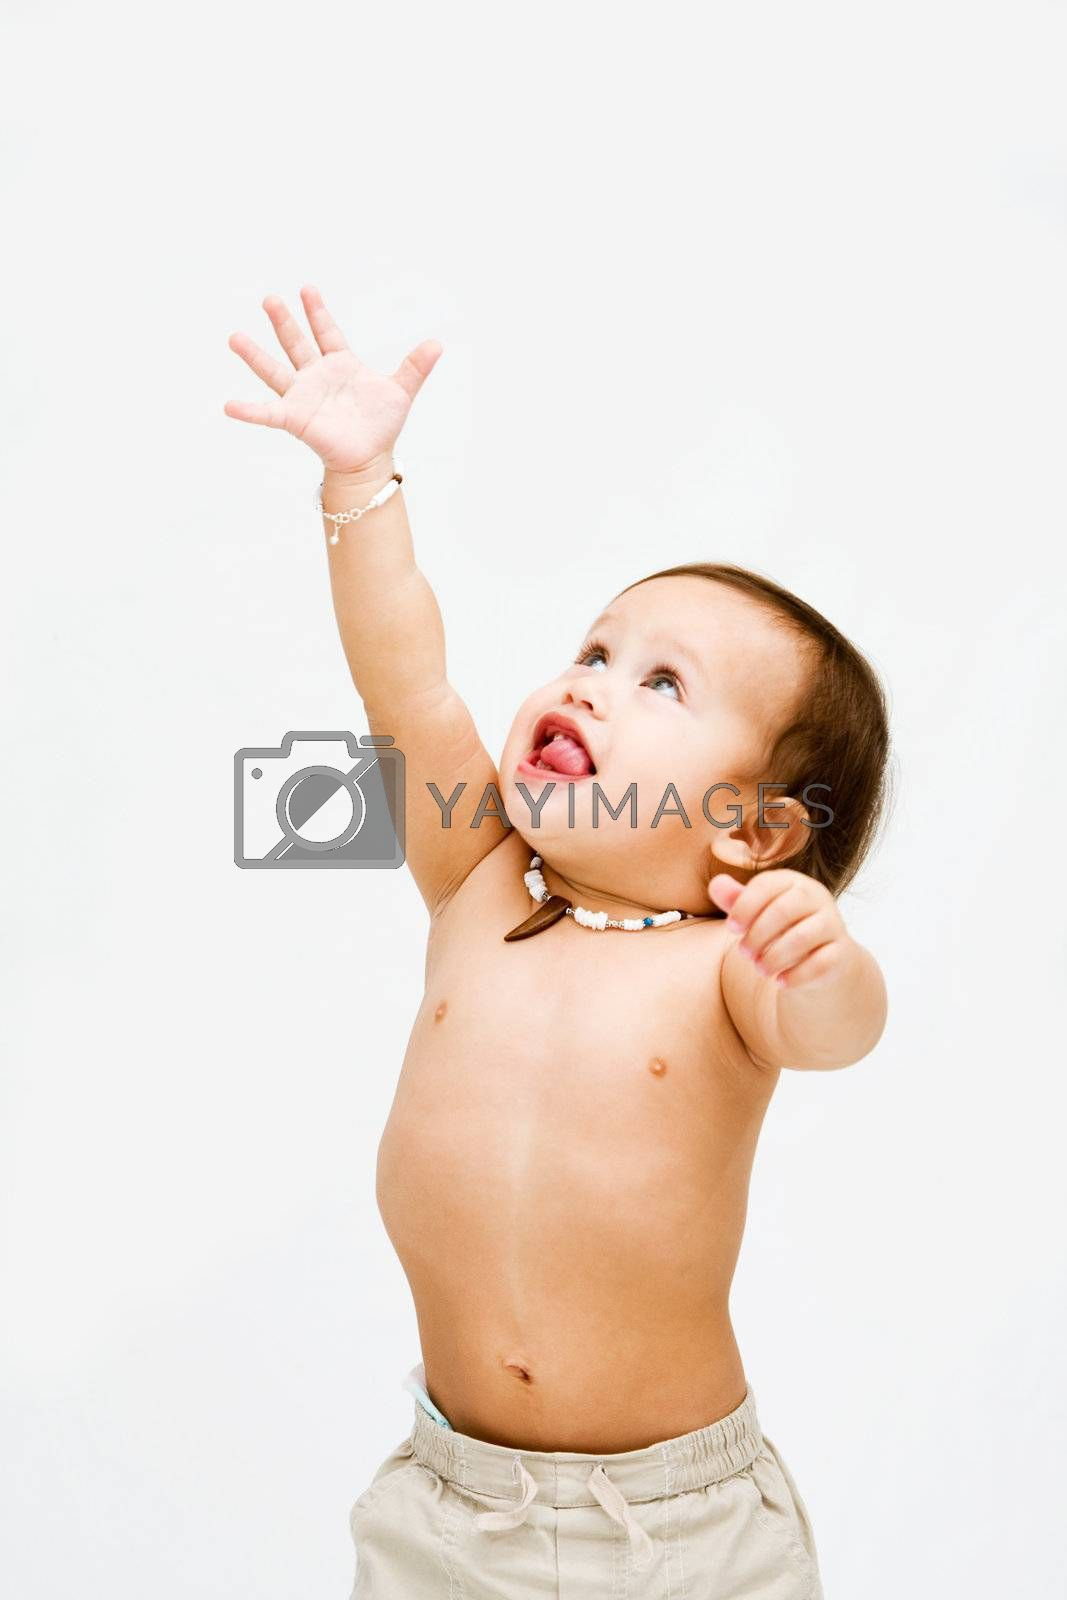 Cute topless toddler boy with necklace reaching for the sky, isolated